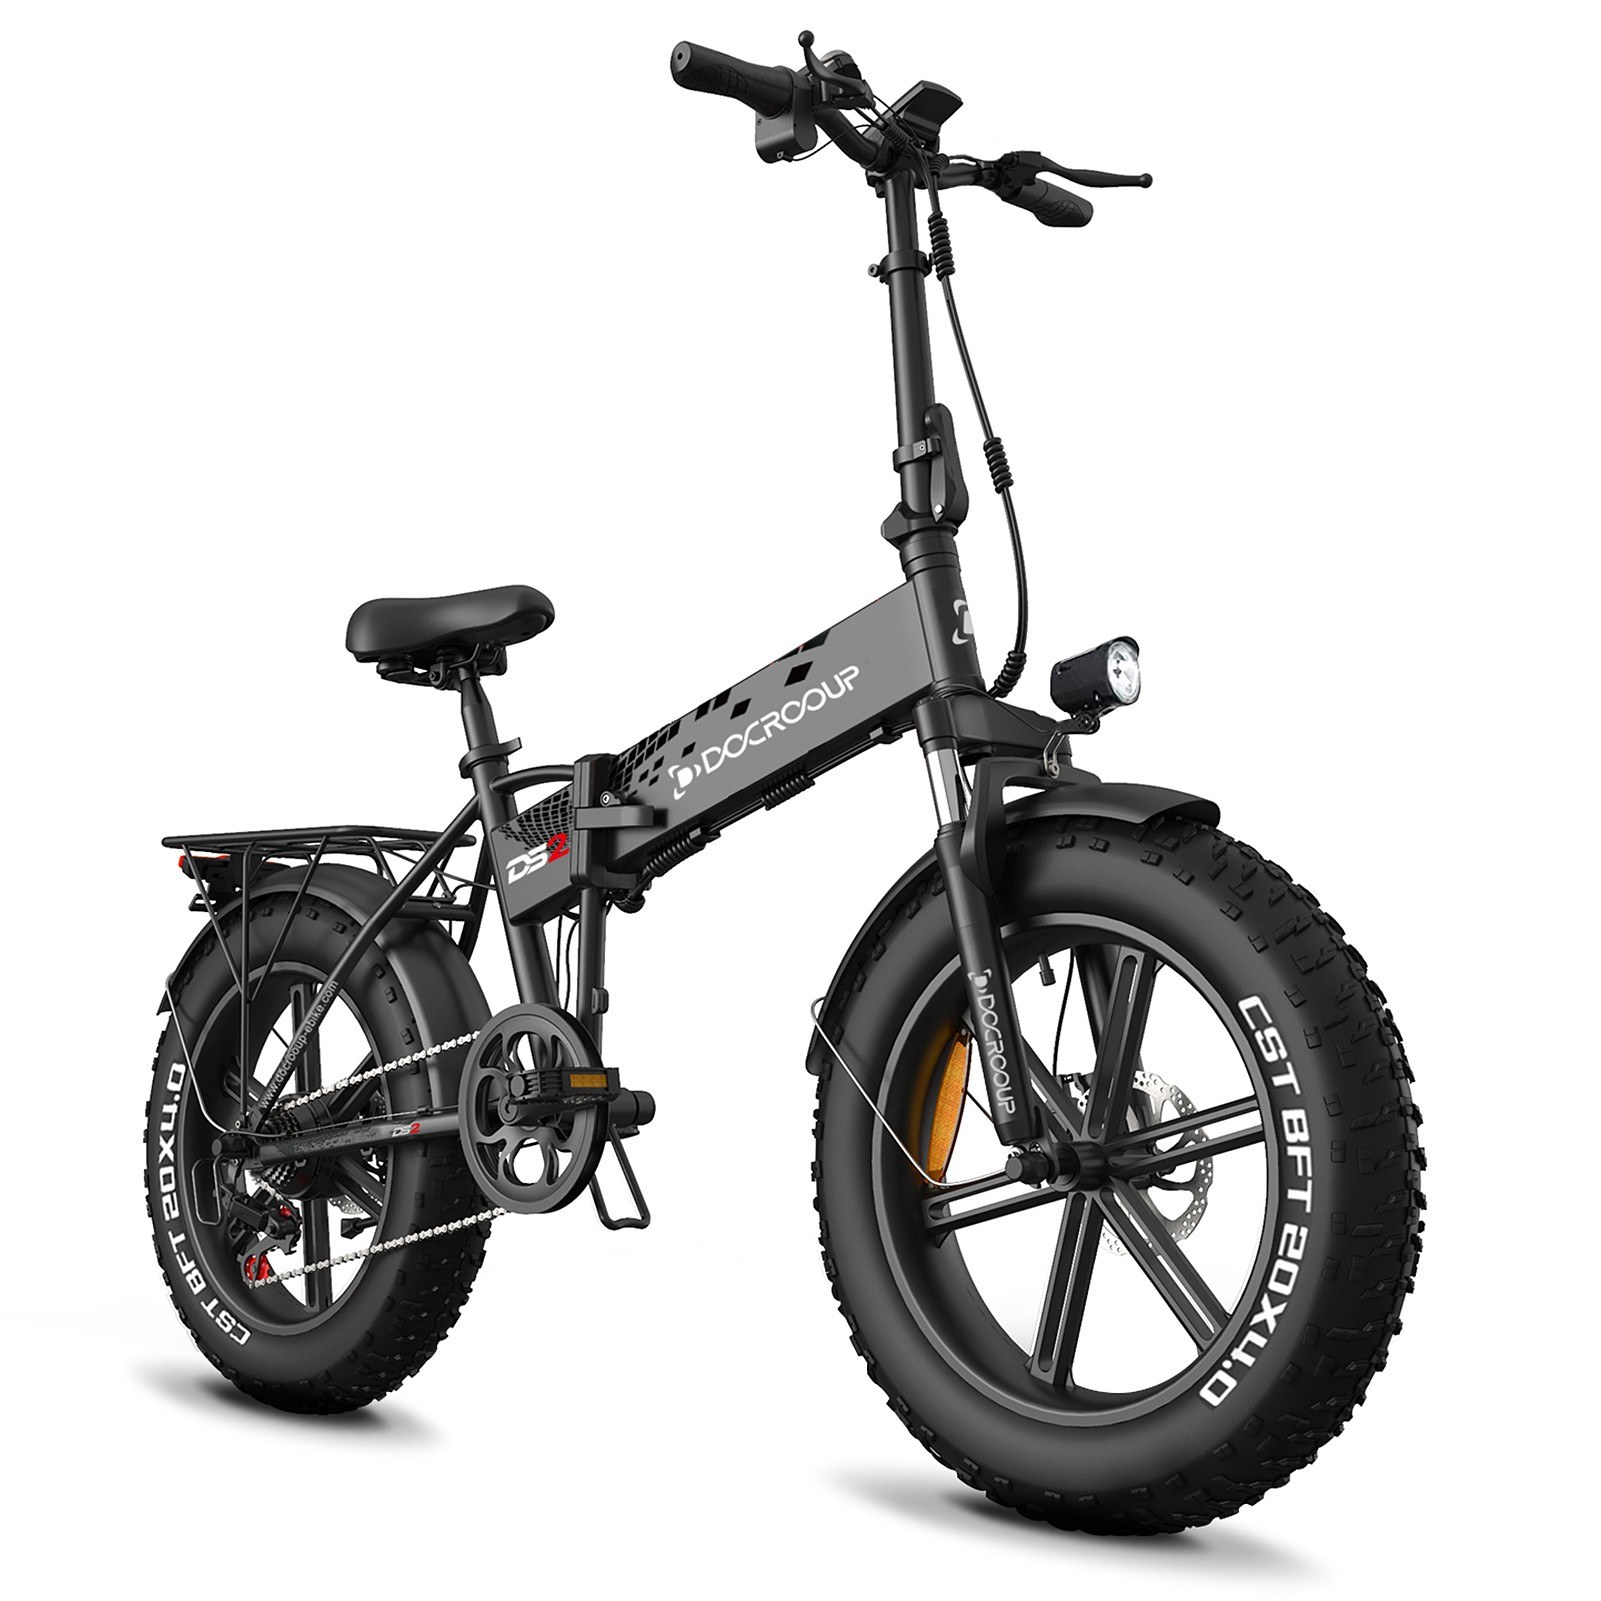 tomtop.com - [US Warehouse] Extra $40 OFF DOCROOUP 20Inch Folding Electric Bike with Turn Signals Brake Light, $1209